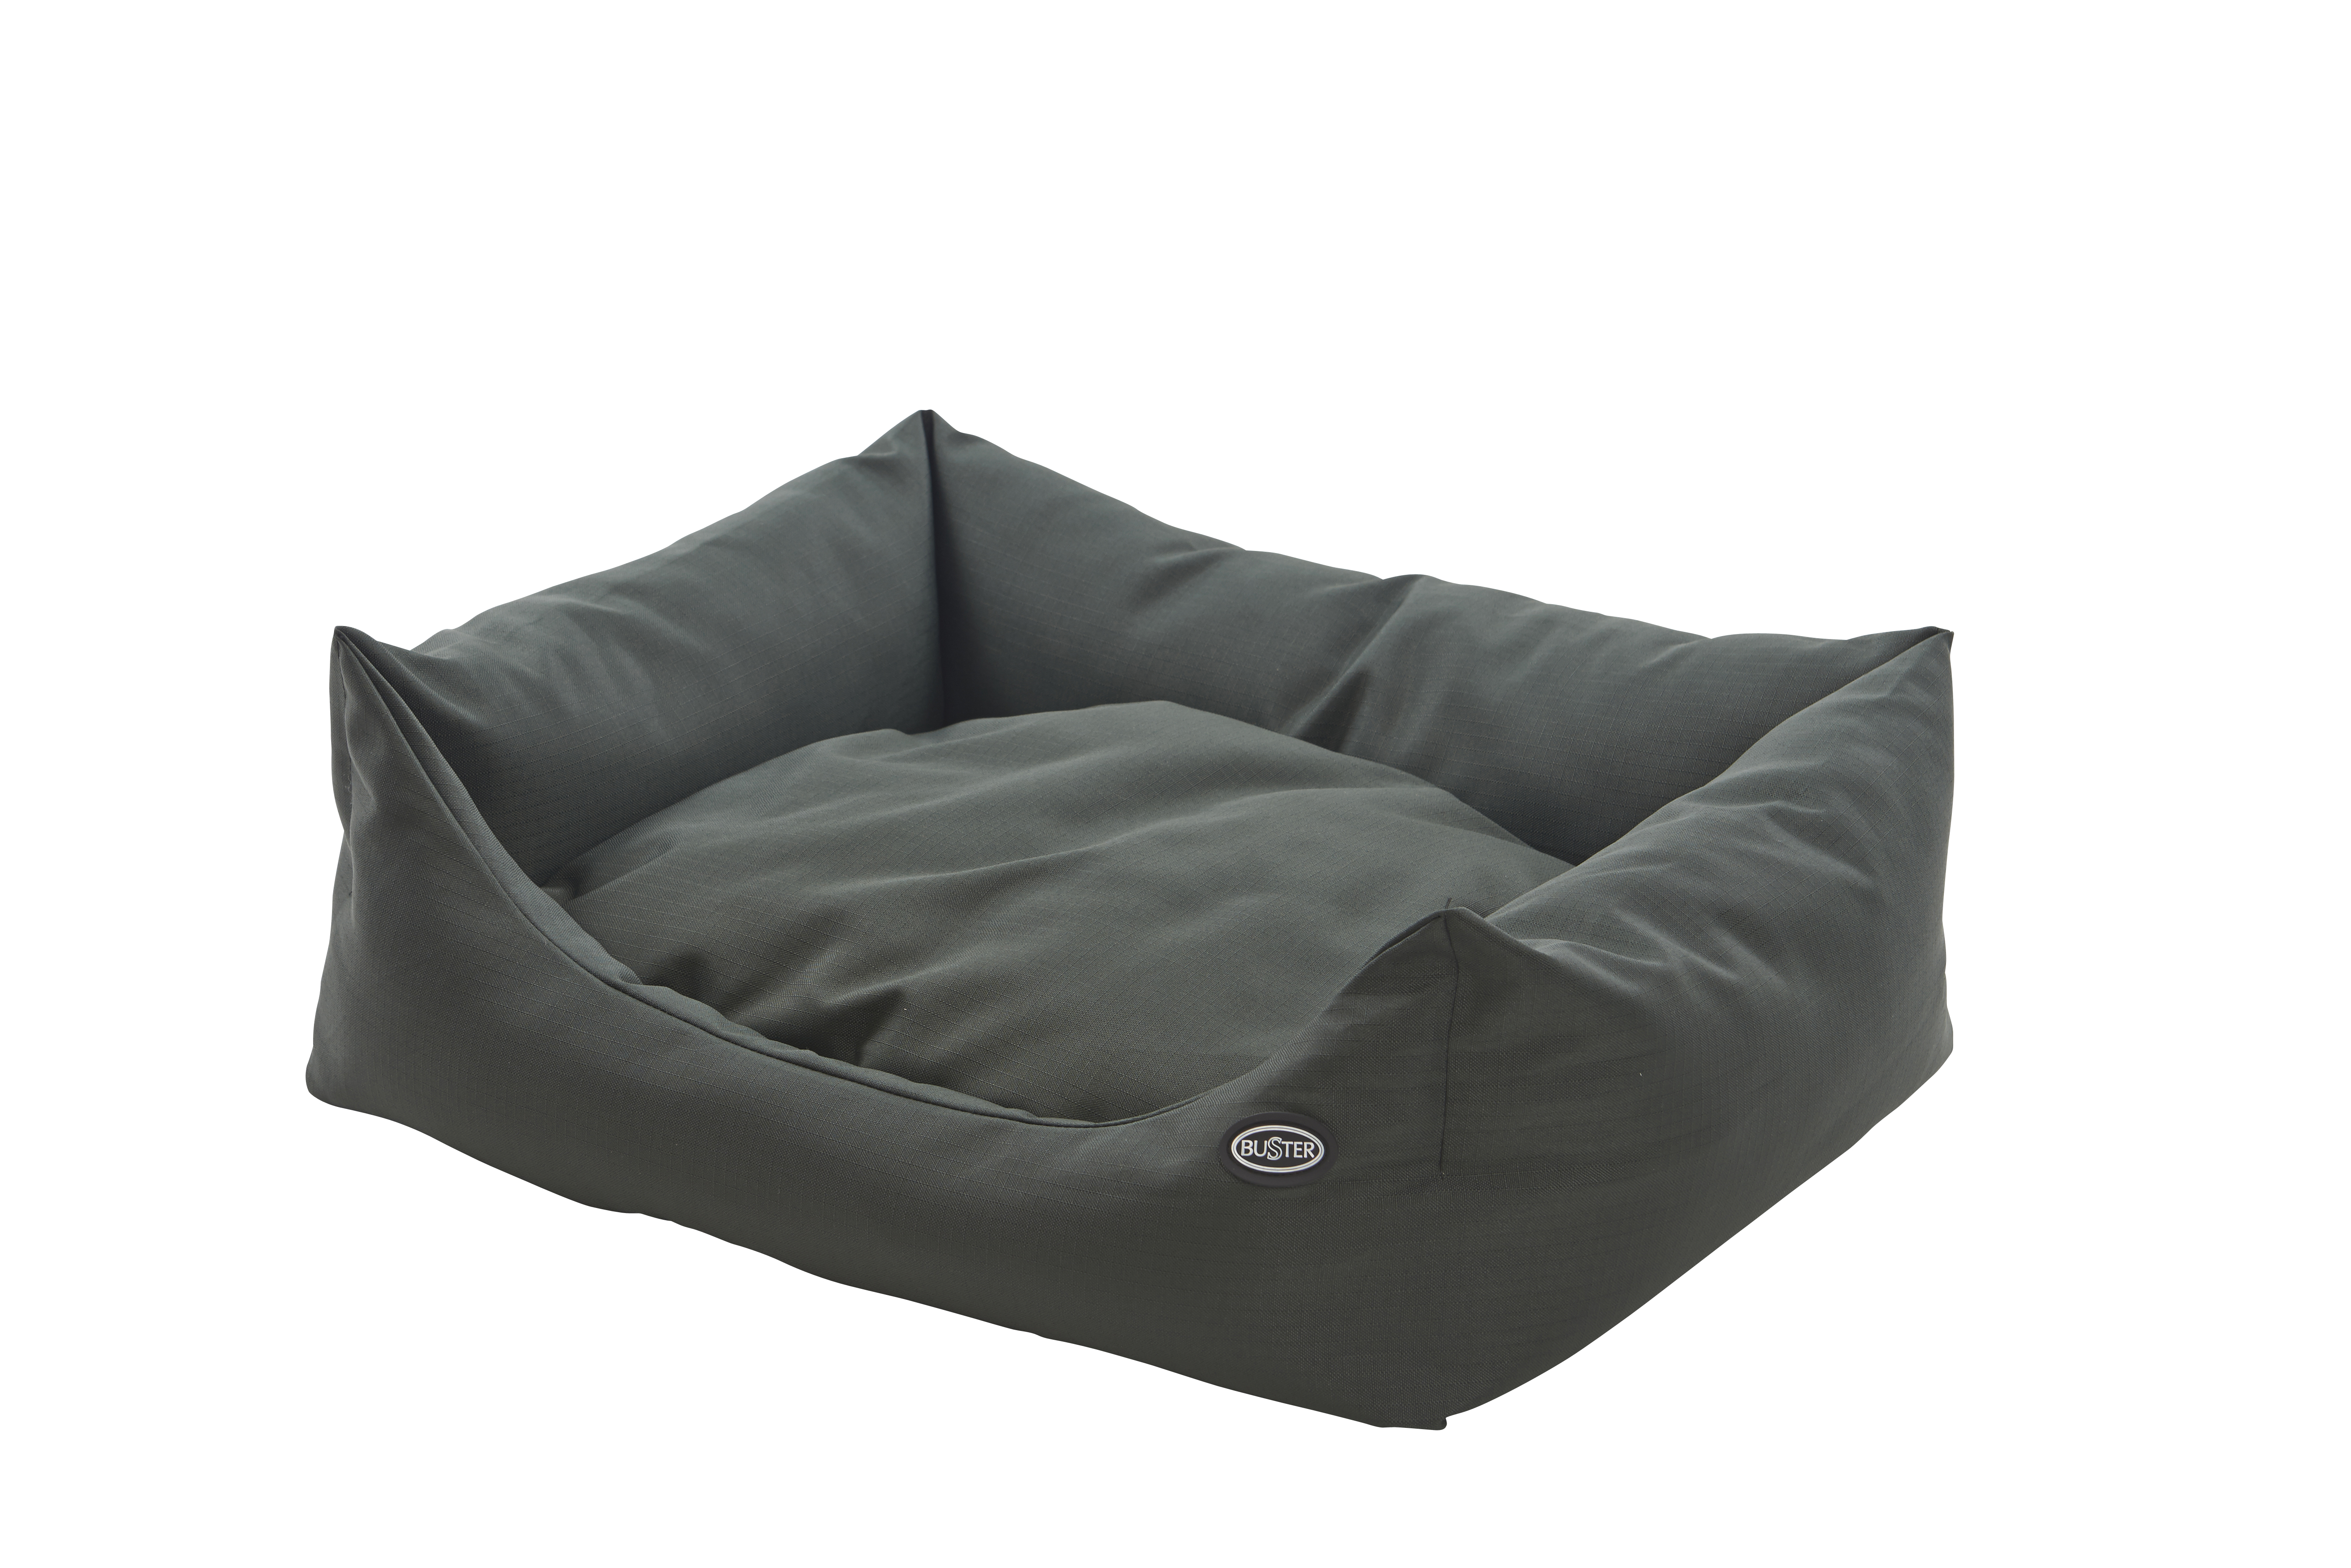 BUSTER Sofa Bed 60x70 cm, Beluga Green